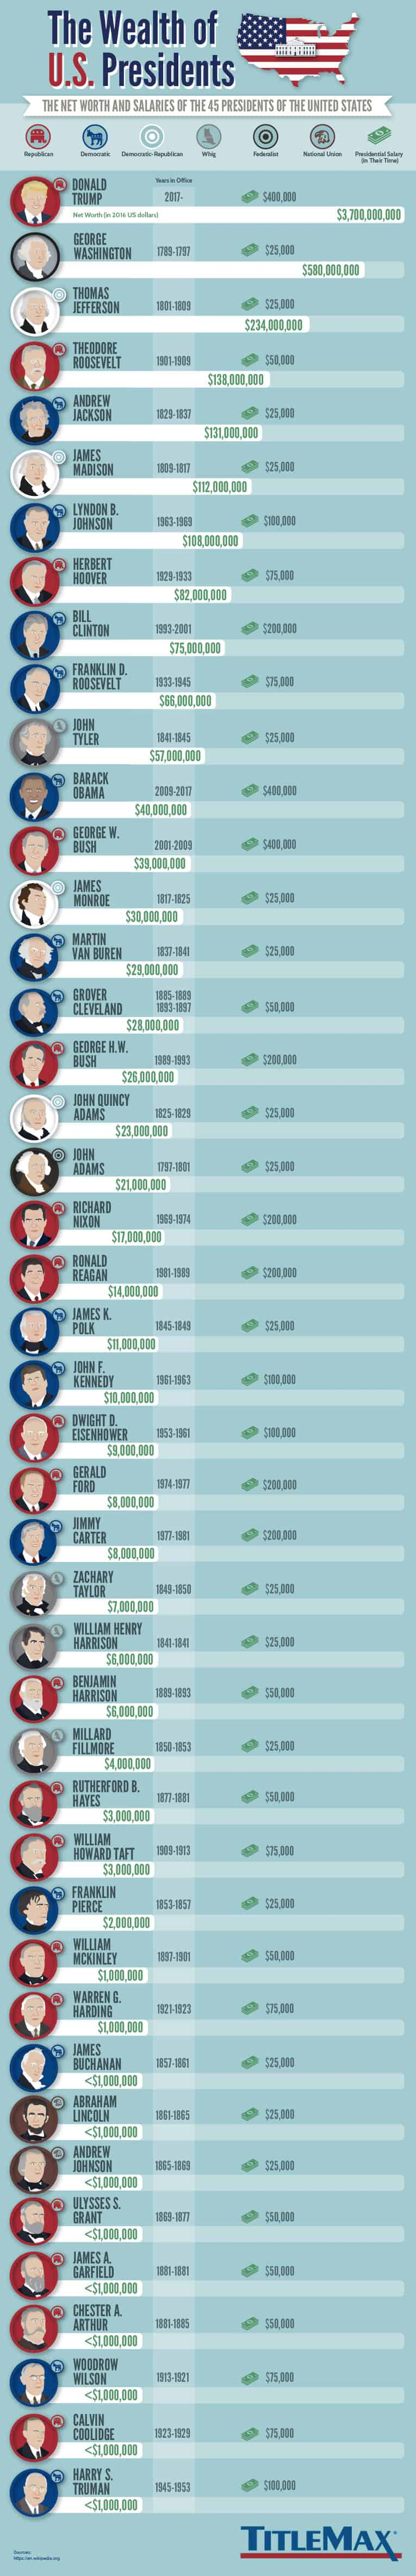 who were wealthiest us presidents